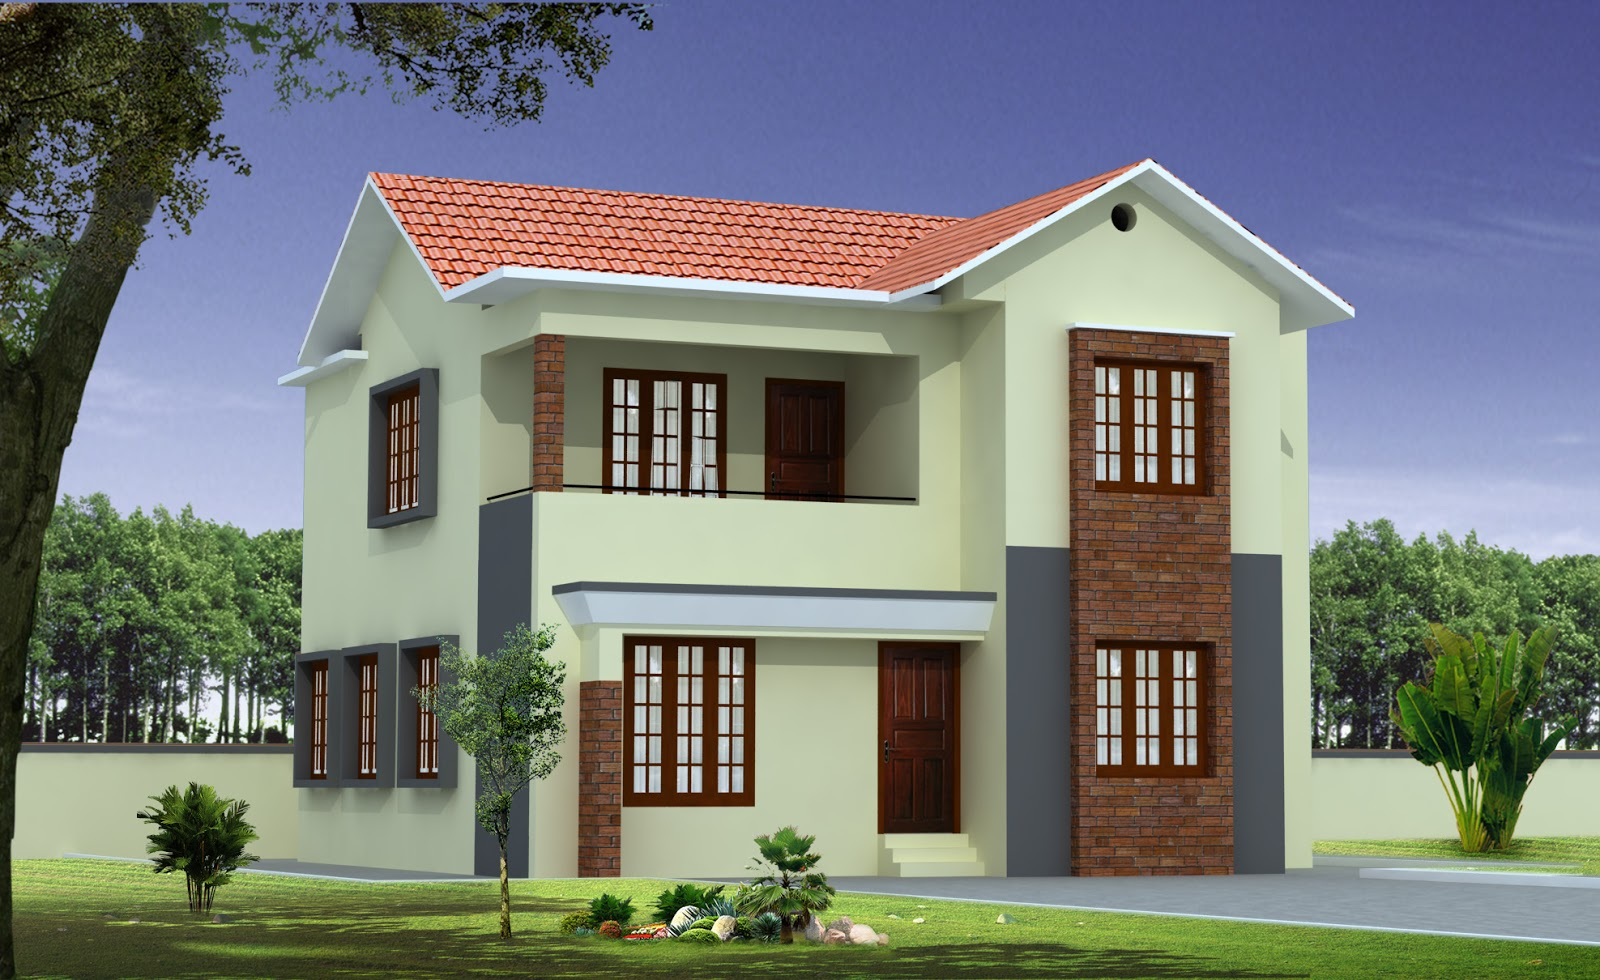 Build a building latest home designs for House and design